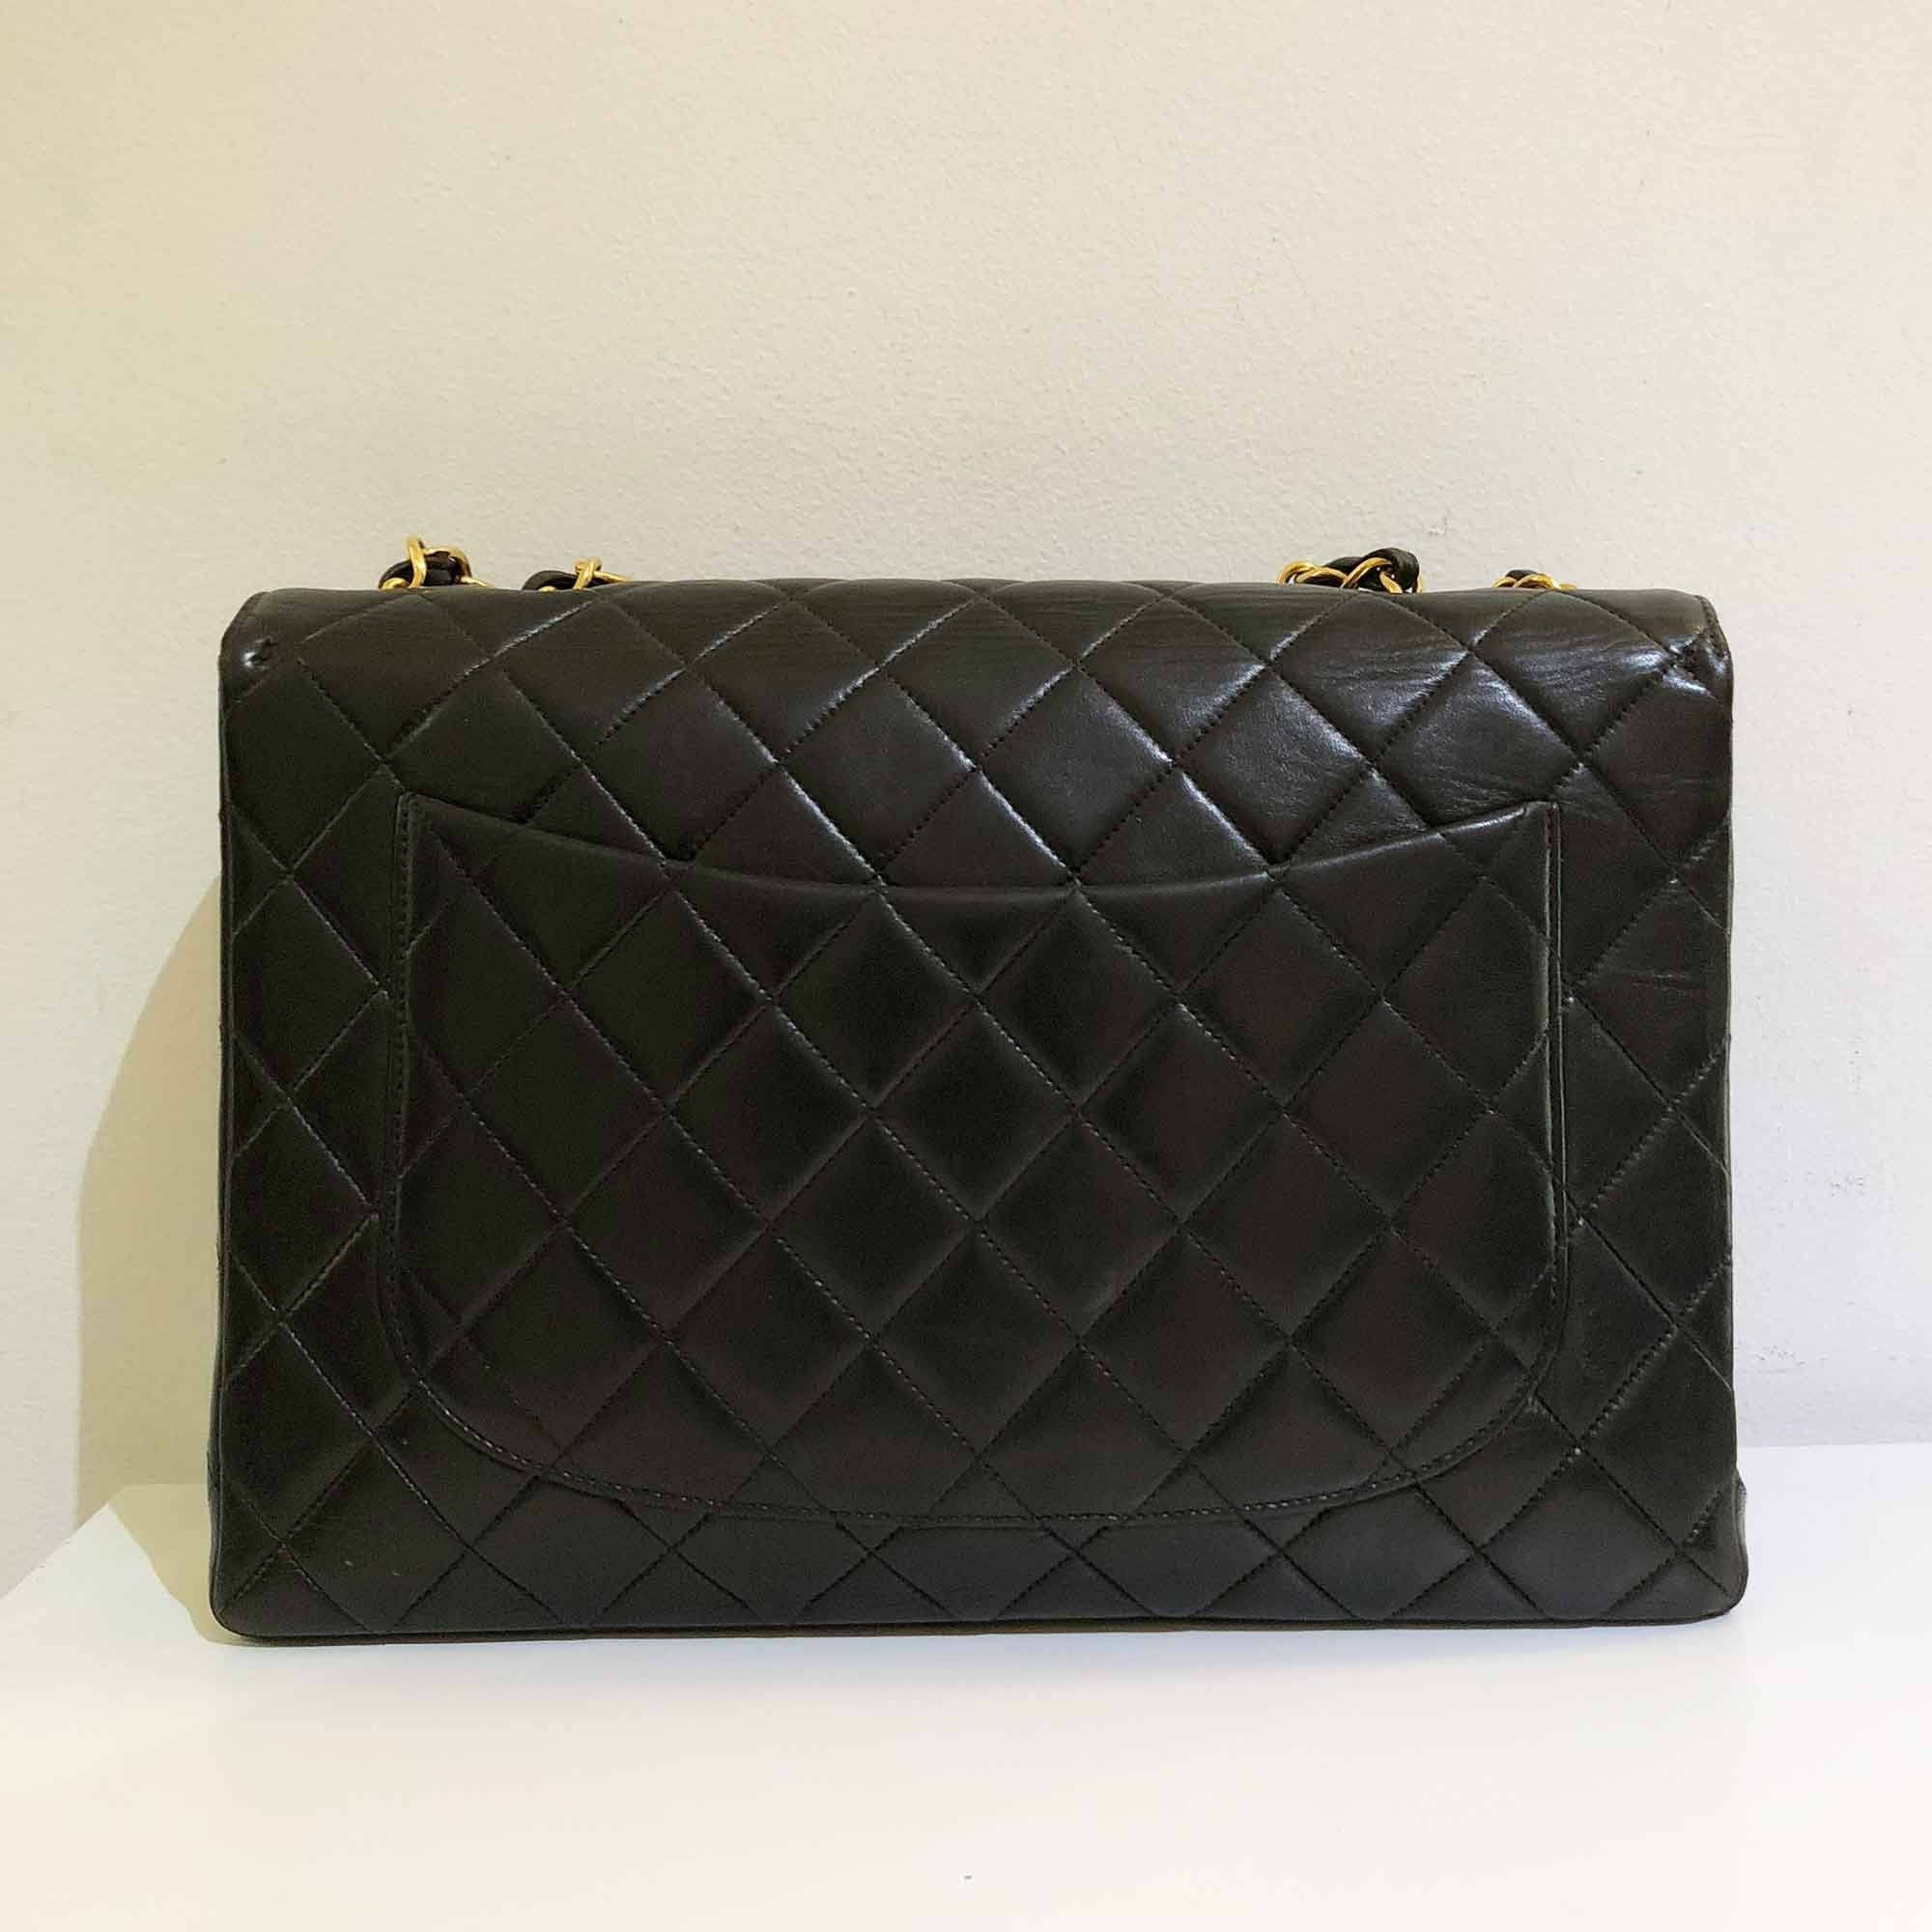 Chanel Quilted Calfskin Leather Vintage Flap Bag